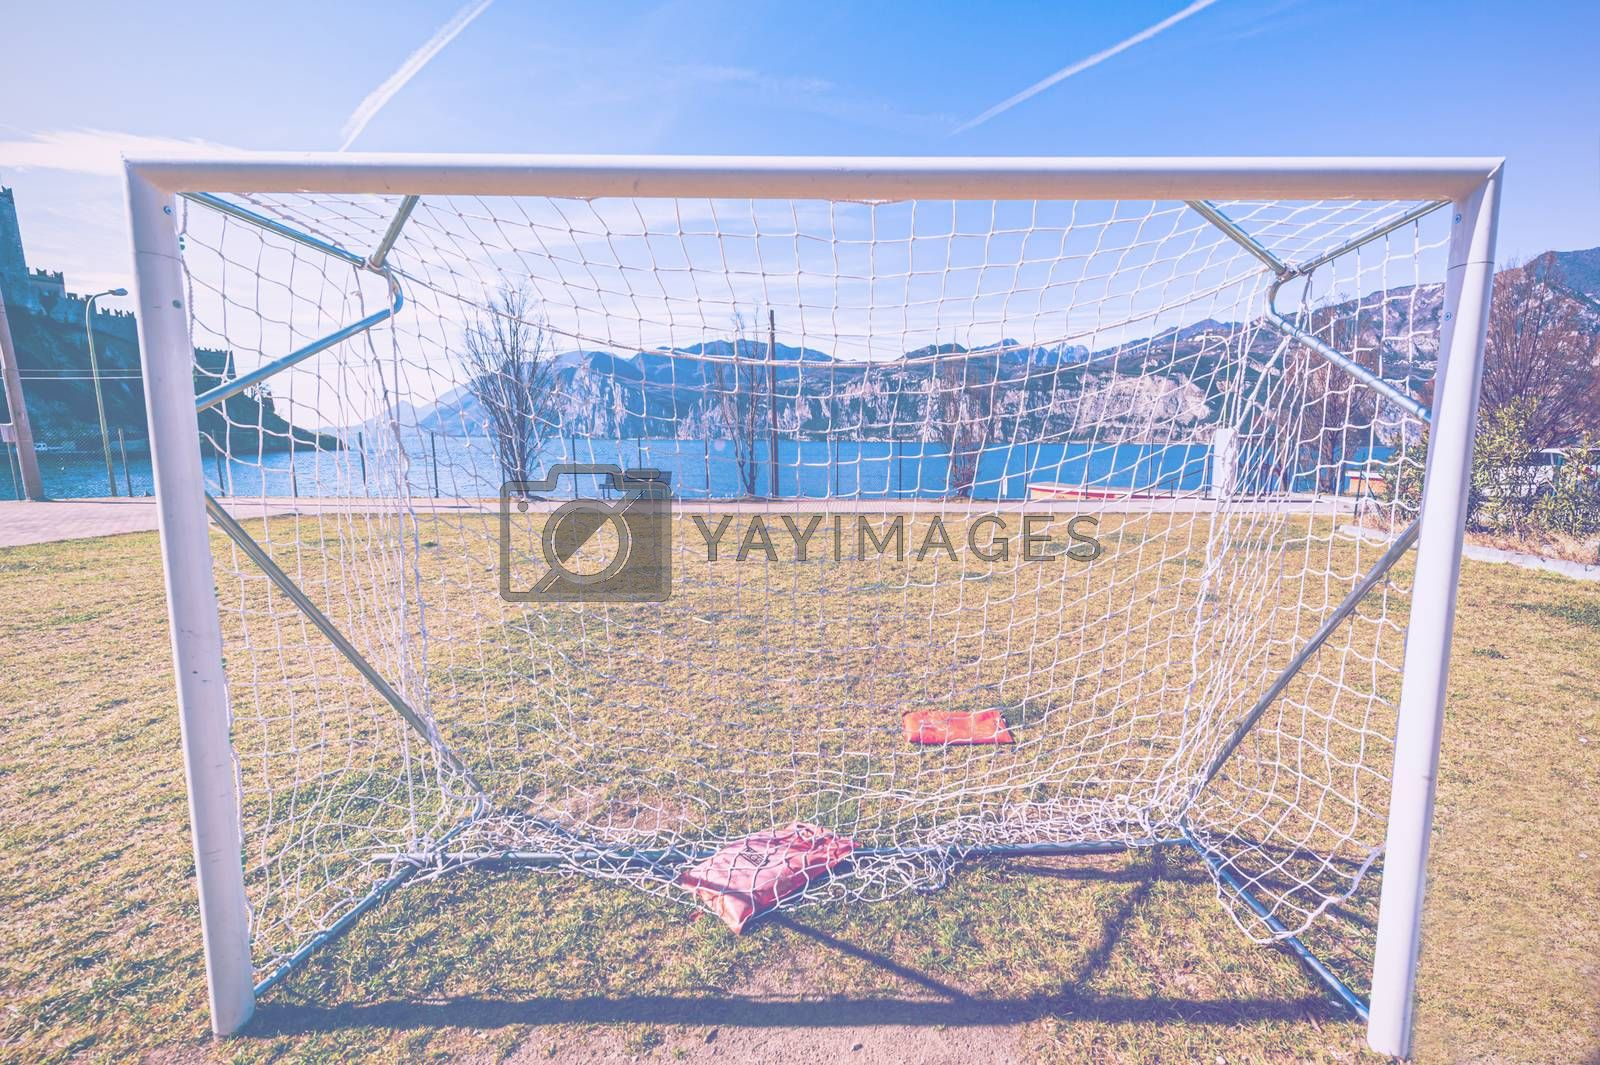 Deserted sports field on the shores of Lake Garda in Italy in faded color effect.